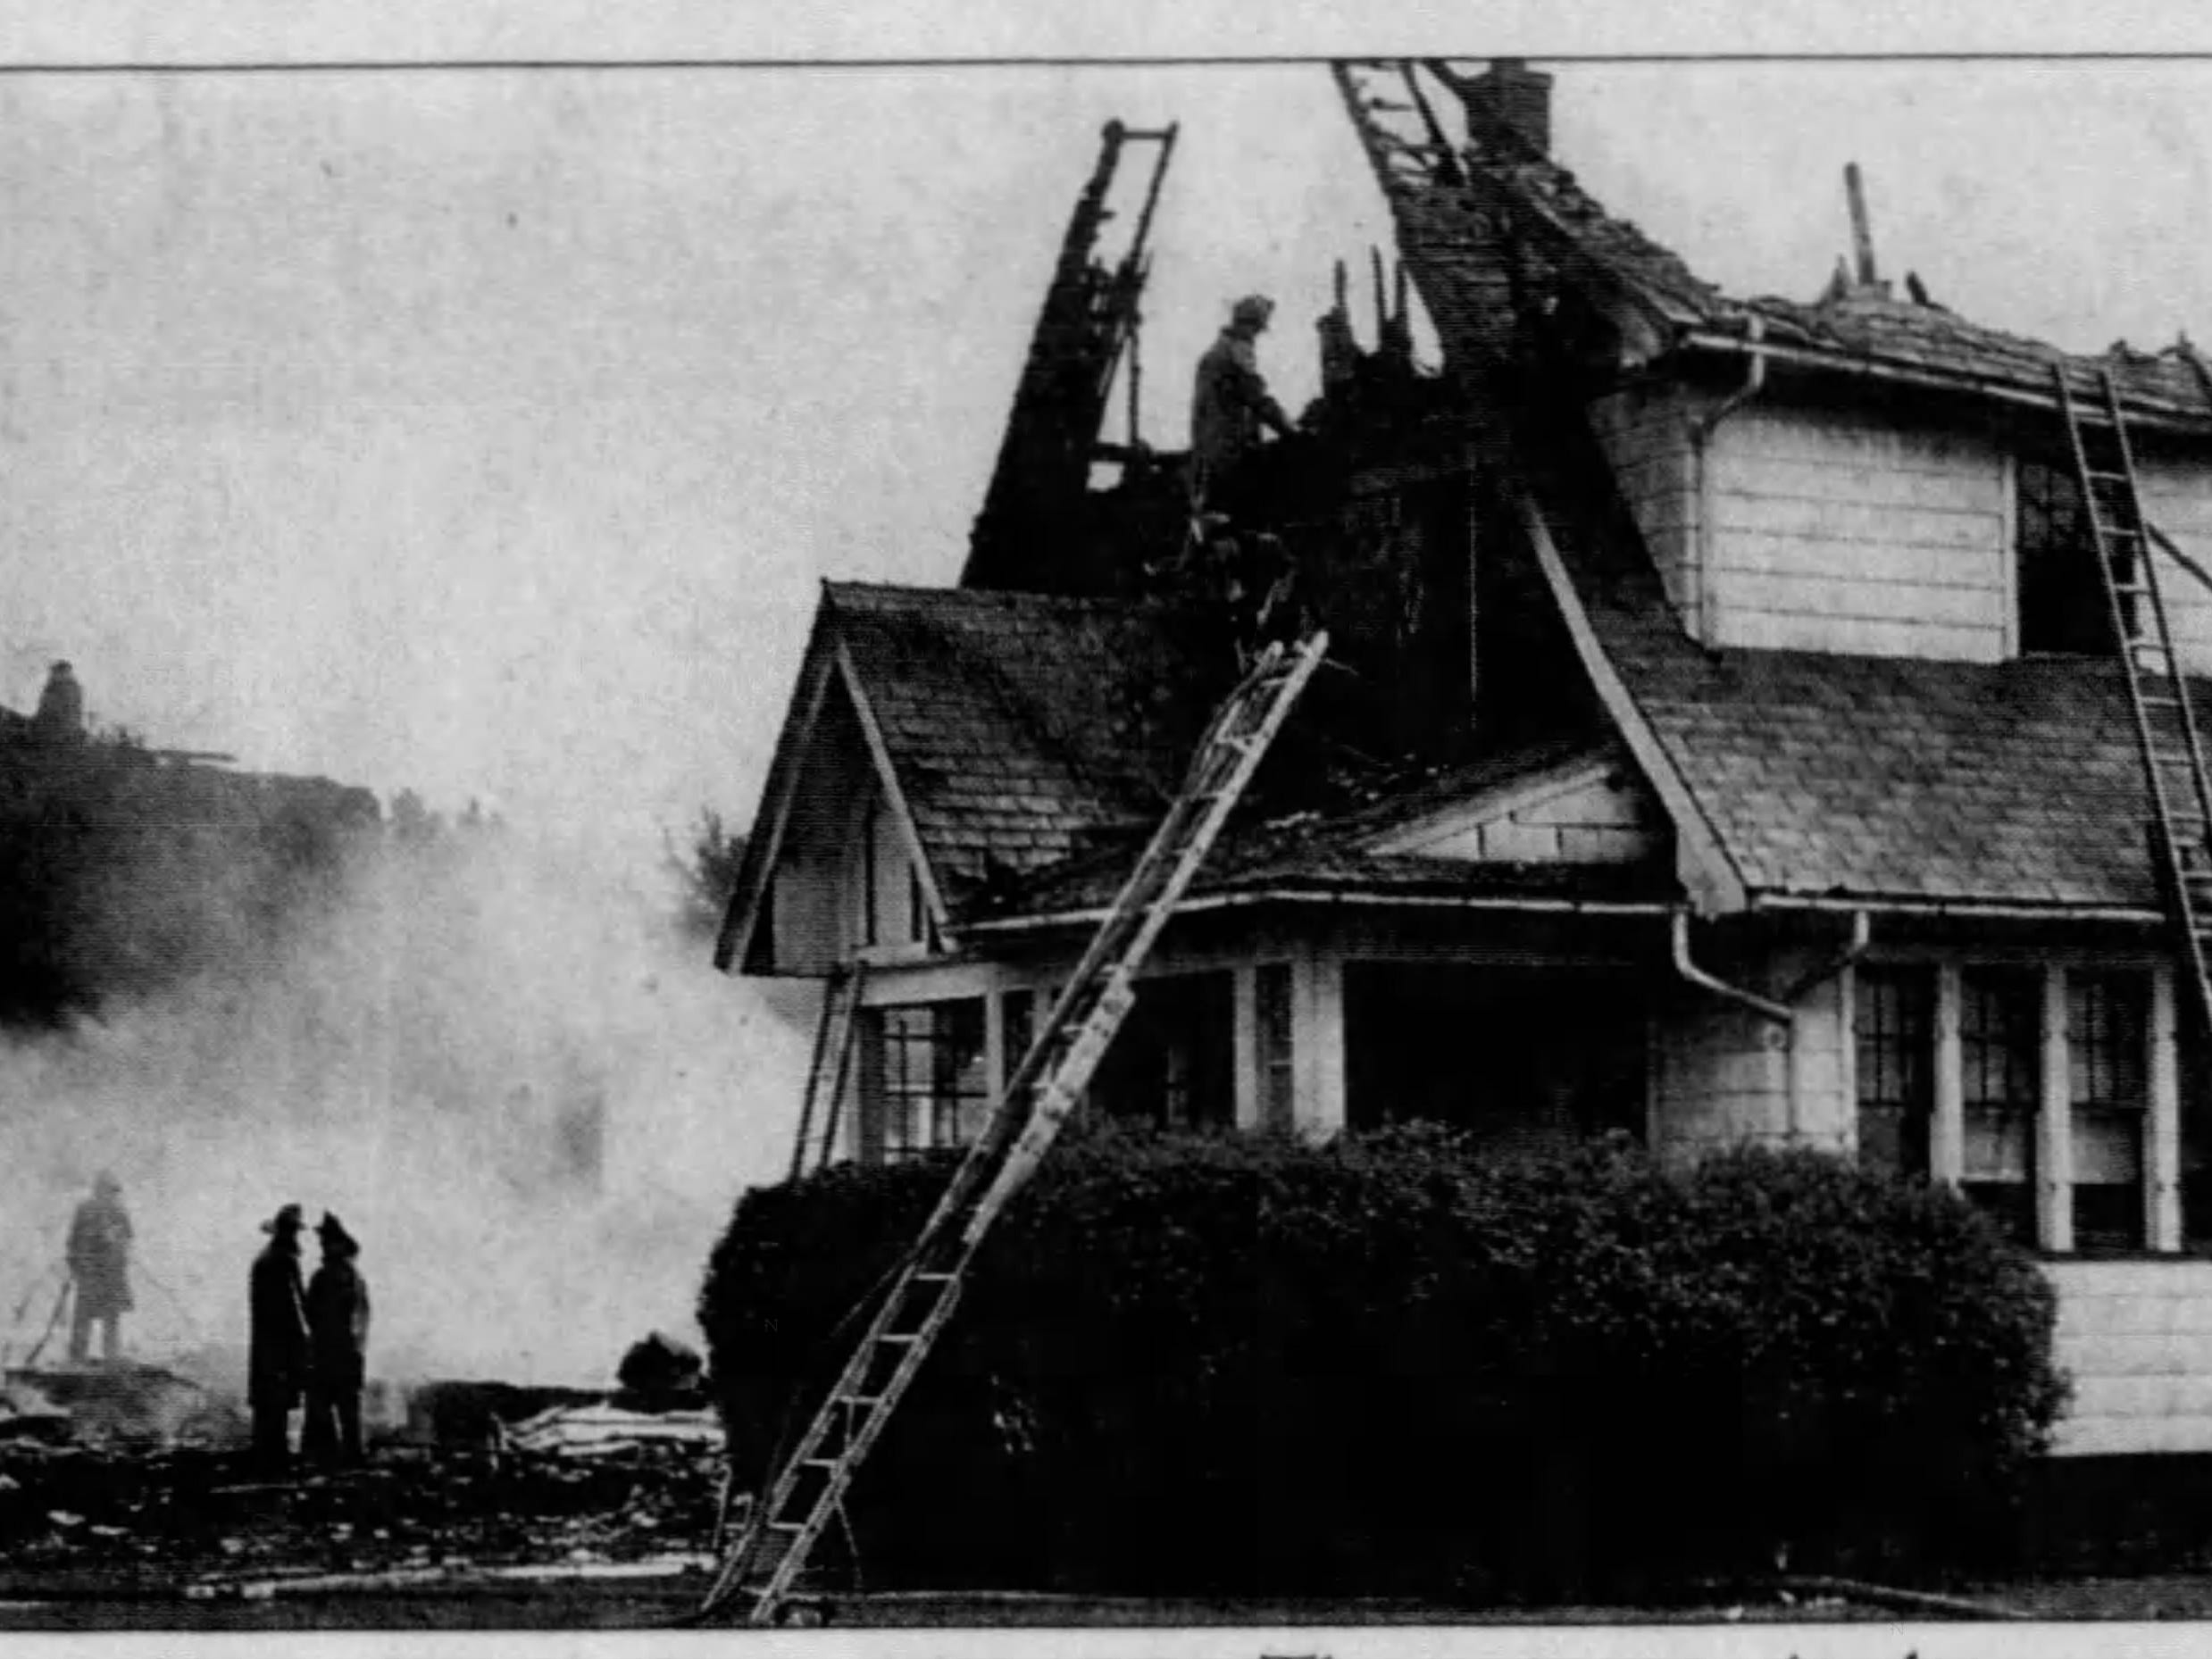 Antlers Drive explosion leveled one home, center, and set two others afire. (Staff photo, 9/21/1951)